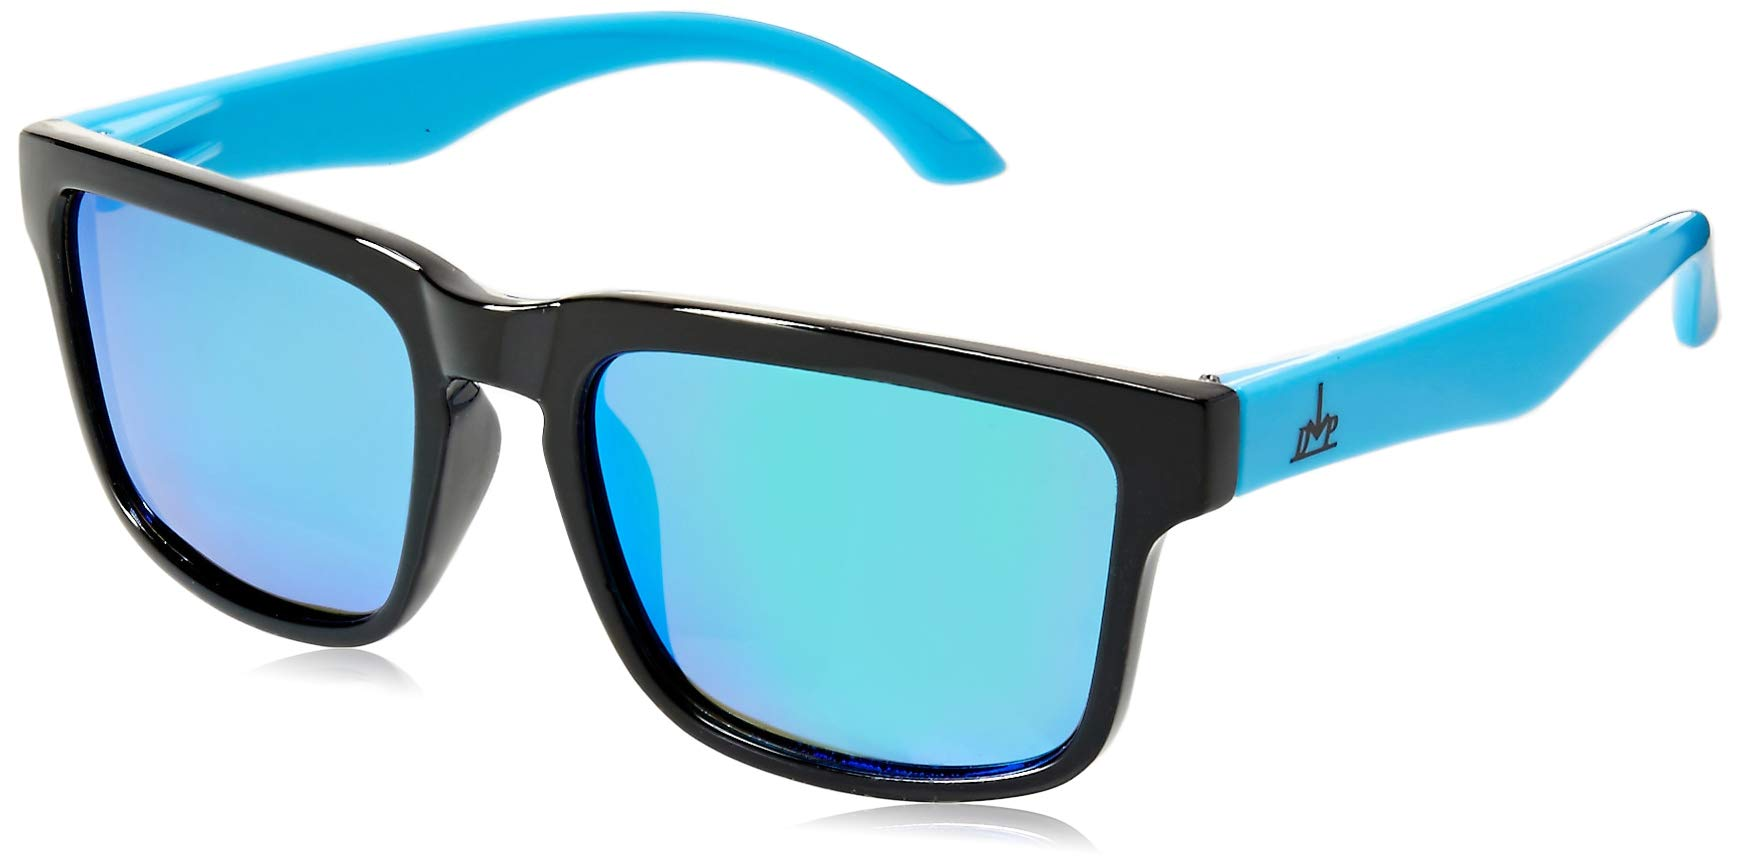 2878889a5b3f8 Vintage Blue Sunglasses Polarized Mirrored Lenses 80s Retro Design Neon  Colors Packaged in A Handmade Metal ...